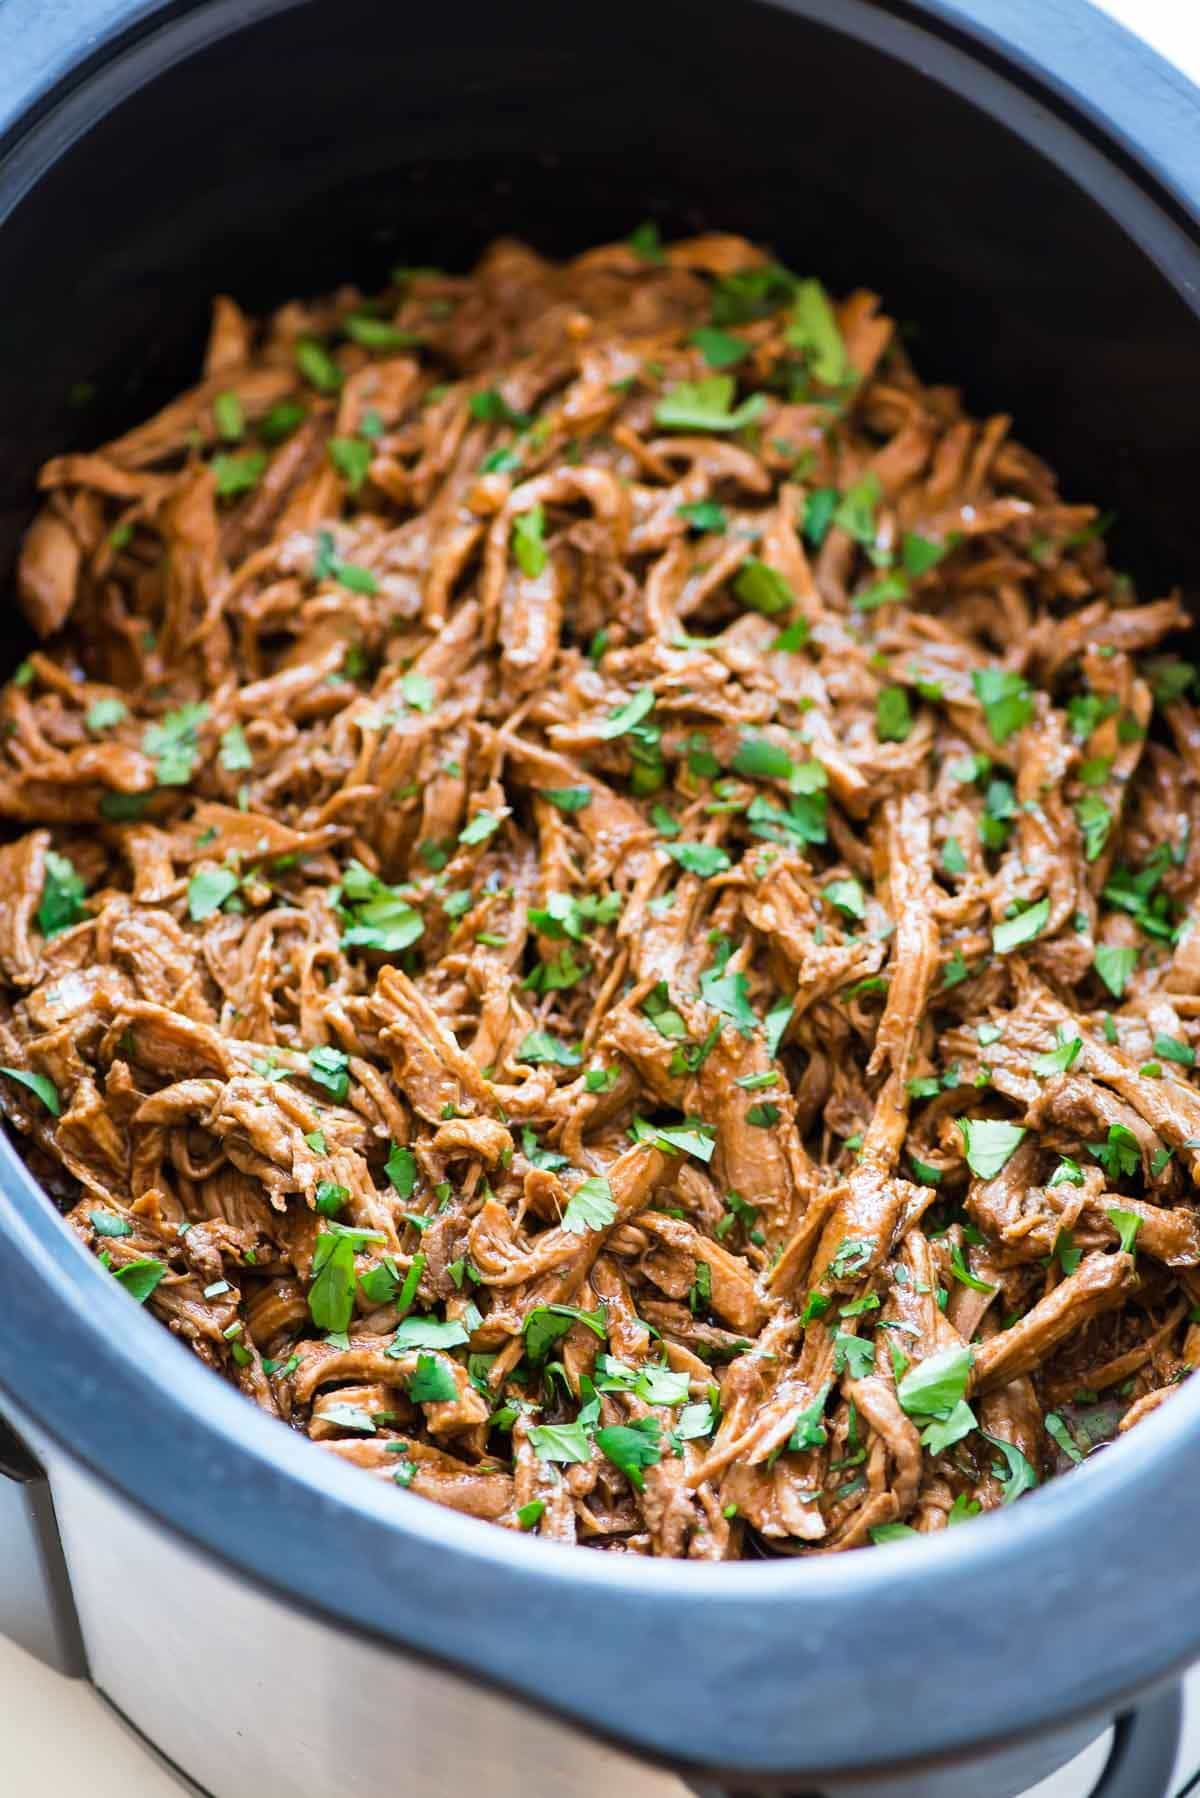 Slow Cooker full of Asian Pulled Pork